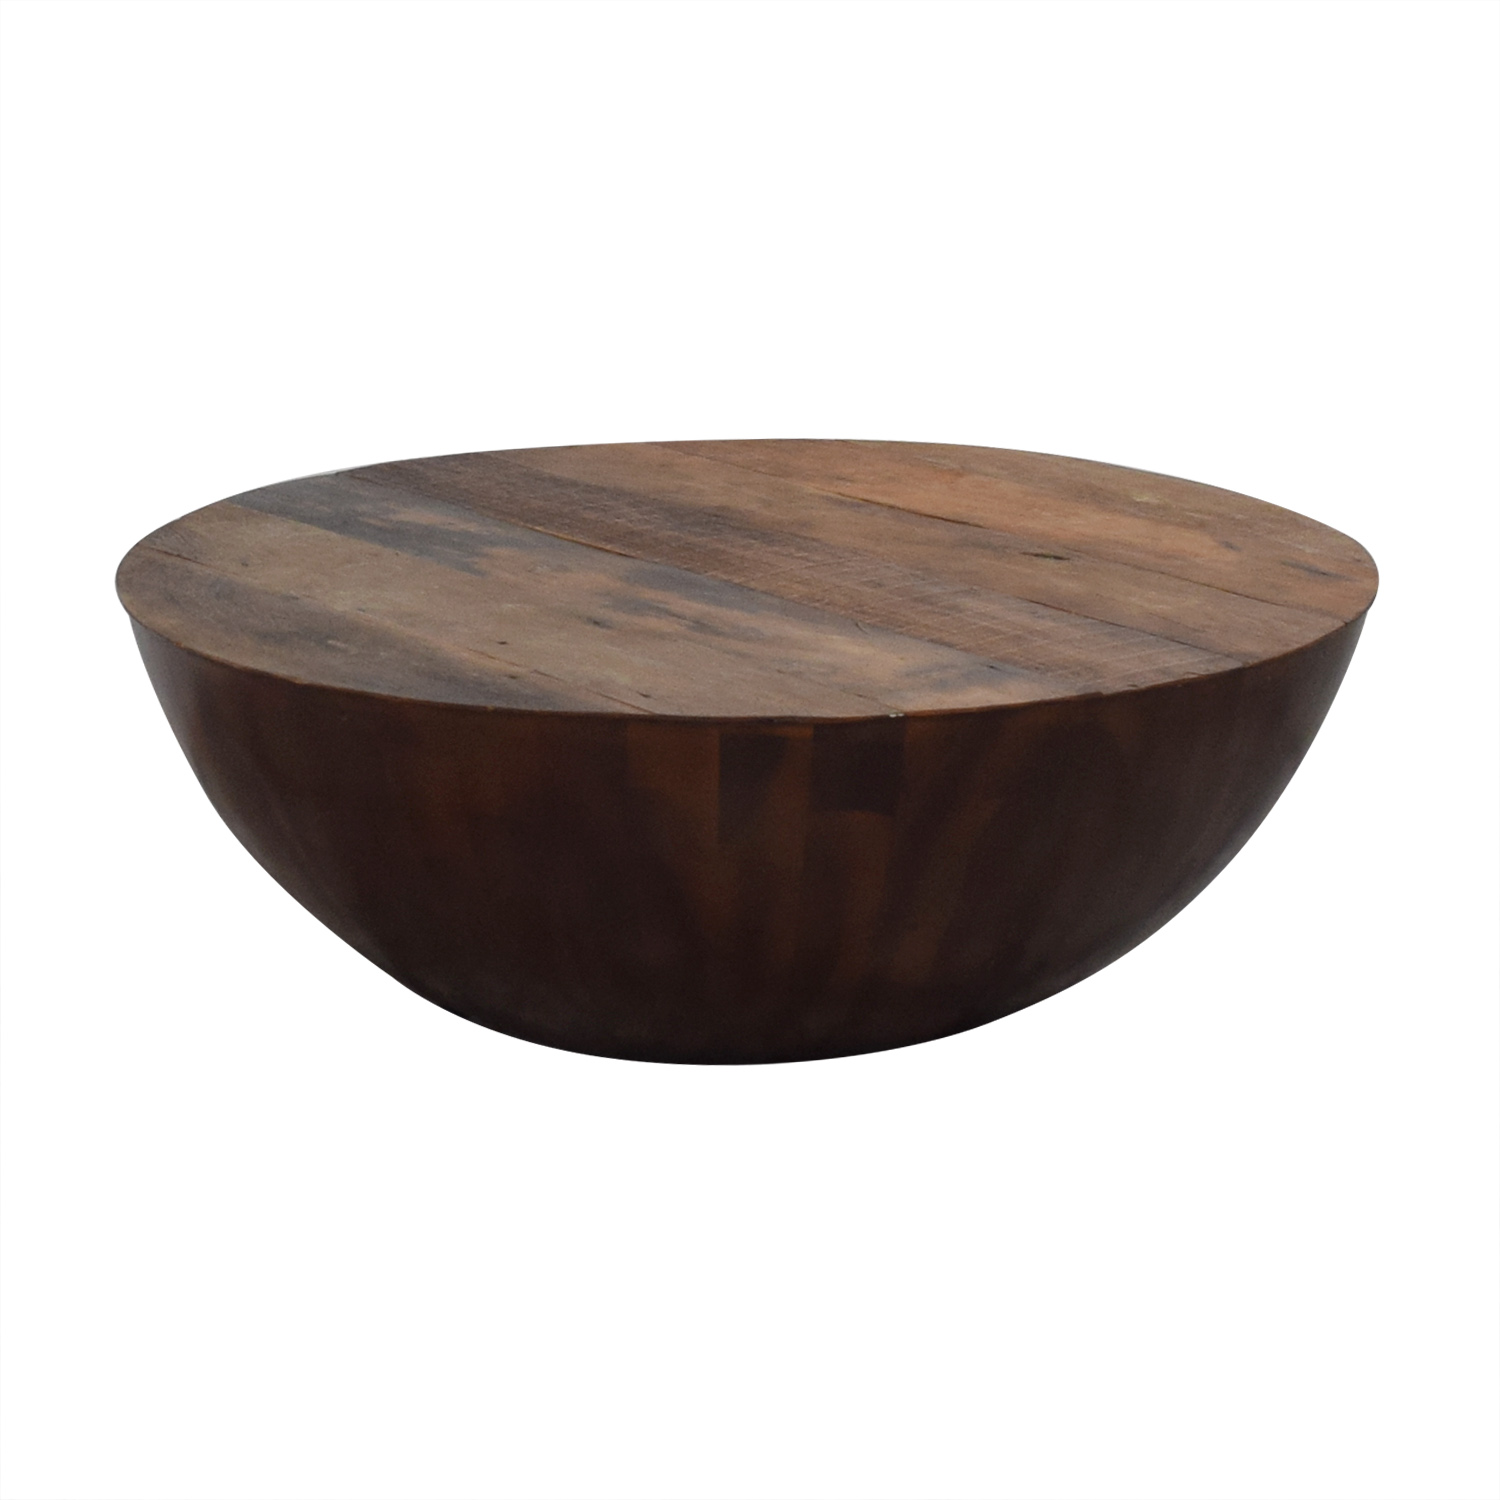 Anthropologie Semisfera Coffee Table / Tables